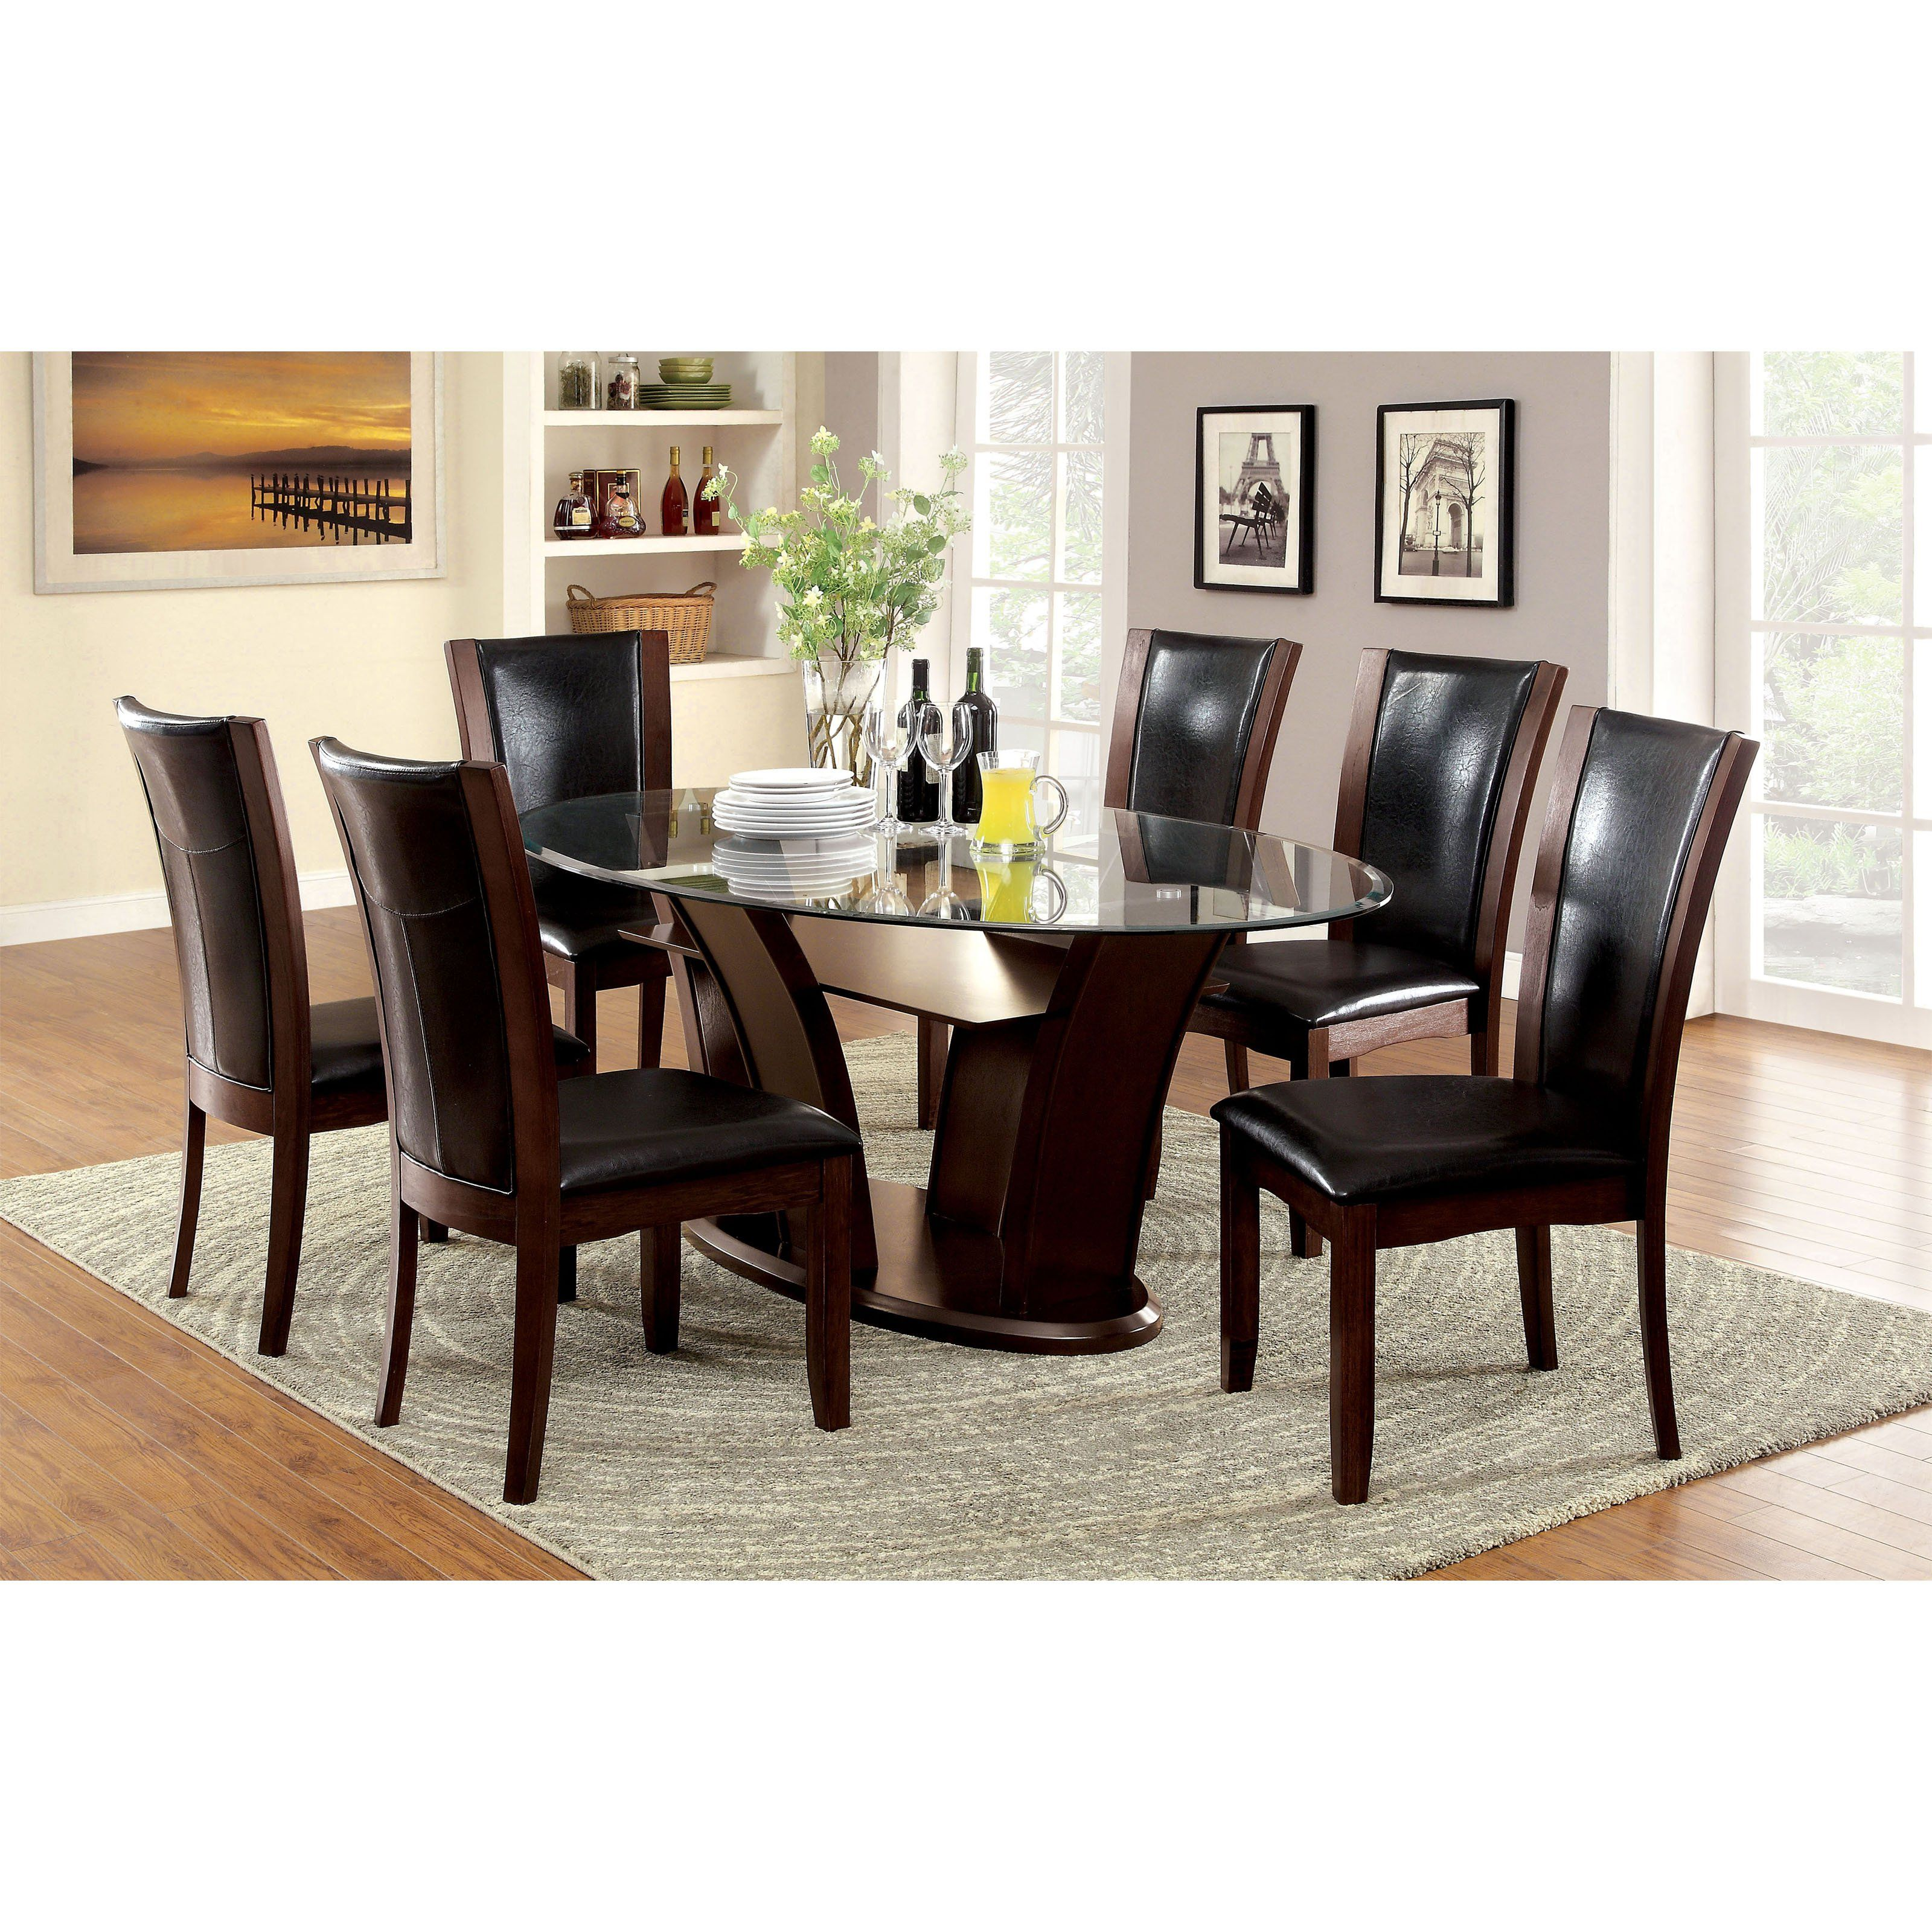 Furniture of america lavelle 7 piece tempered glass top dining table set idf 3710ot 7pc